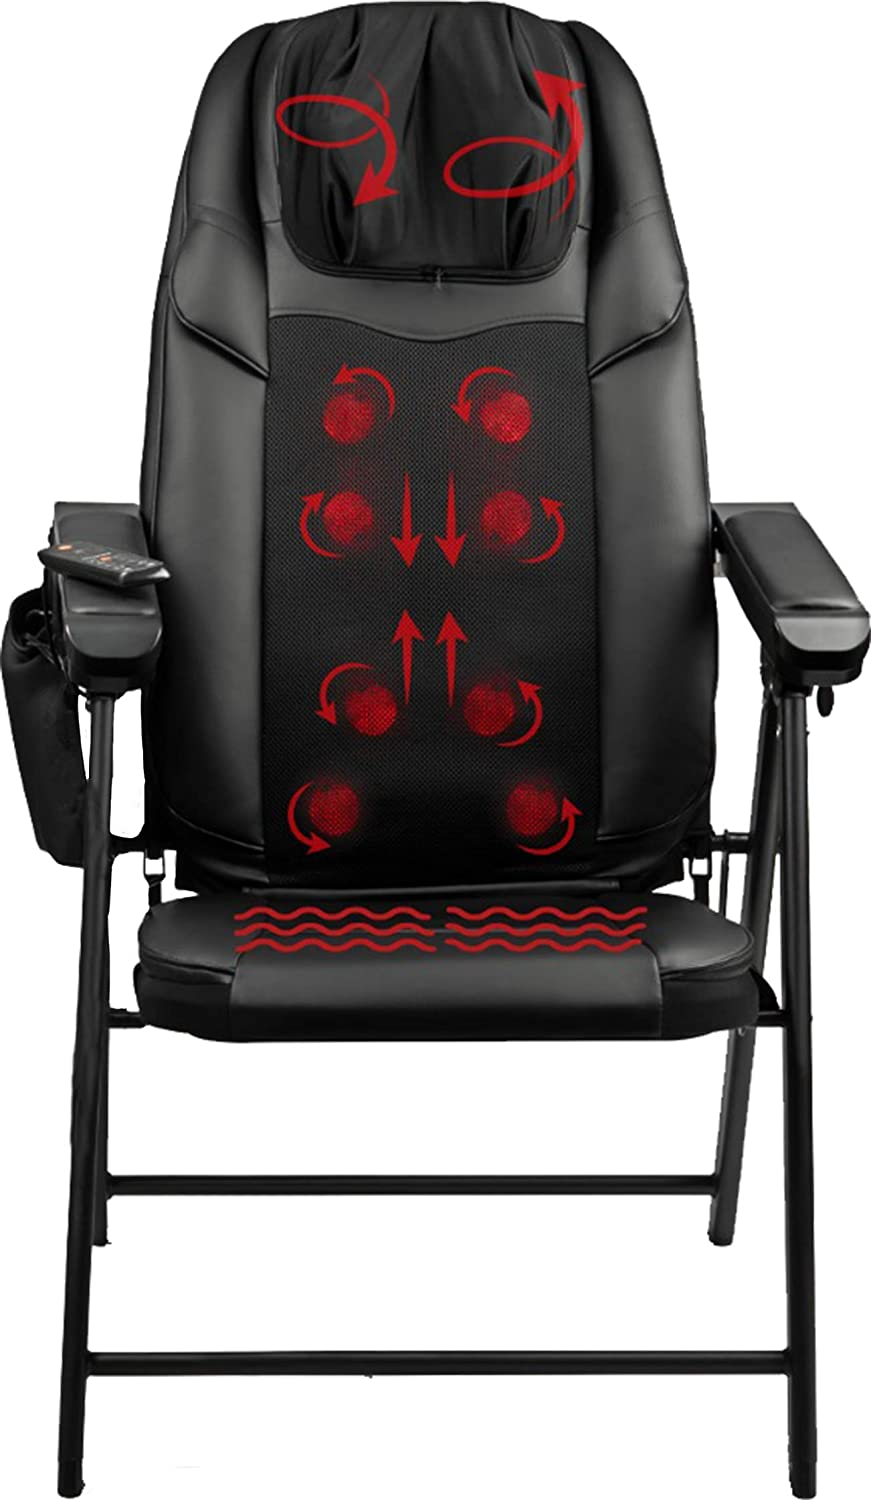 Shiatsu Massage Folding Chair with Heat - Features 8 Deep Kneading Rollers, 3 Vibration Settings, USB Port - Adjustable Seat Massager for Back, Neck and Shoulder Muscle Pain Relief